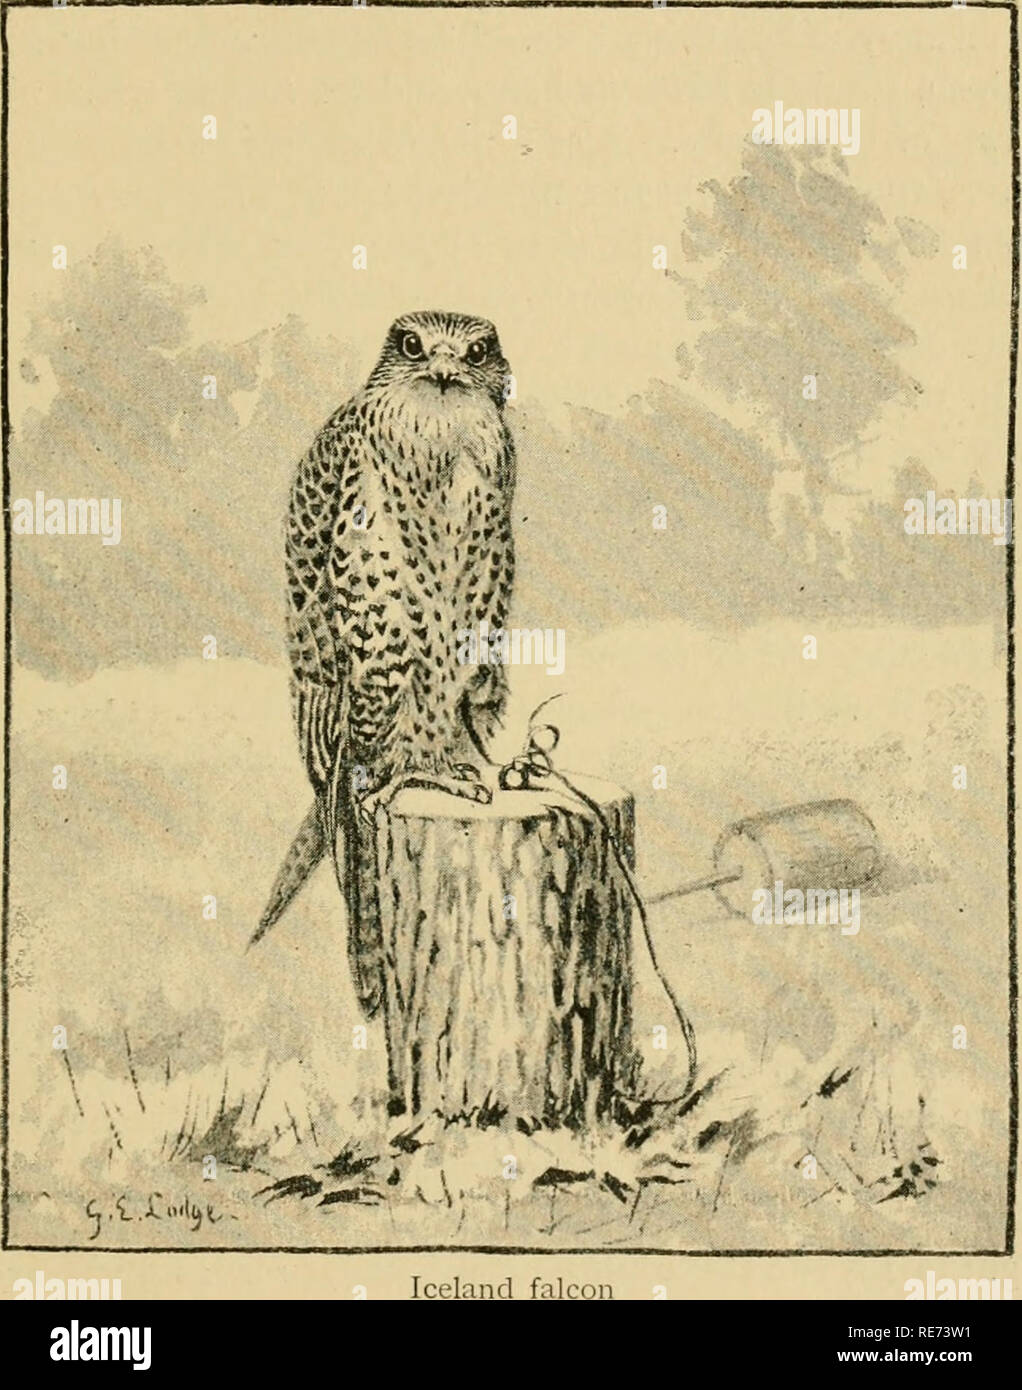 . Coursing and falconry. Coursing; Falconry; CHR 1892; PRO Stewardson, Misses (donor). GERFALCONS 295 ing this stud of hawks, together with Mr. E. C. Newcome. They were then estabhshed at Elveden, and all, or nearly all, were trained, and many entered. Probably, since the earliest days of falconry, a stud of hawks has never been seen of. Iceland fa so magnificent an appearance as this collection presented at that time. Besides the thirty-three gerfalcons, there was a fair team of peregrines, a sacre in full work, a goshawk or two, and some naif-dozen/wzzVj which Barr purchased in order to be s - Stock Image